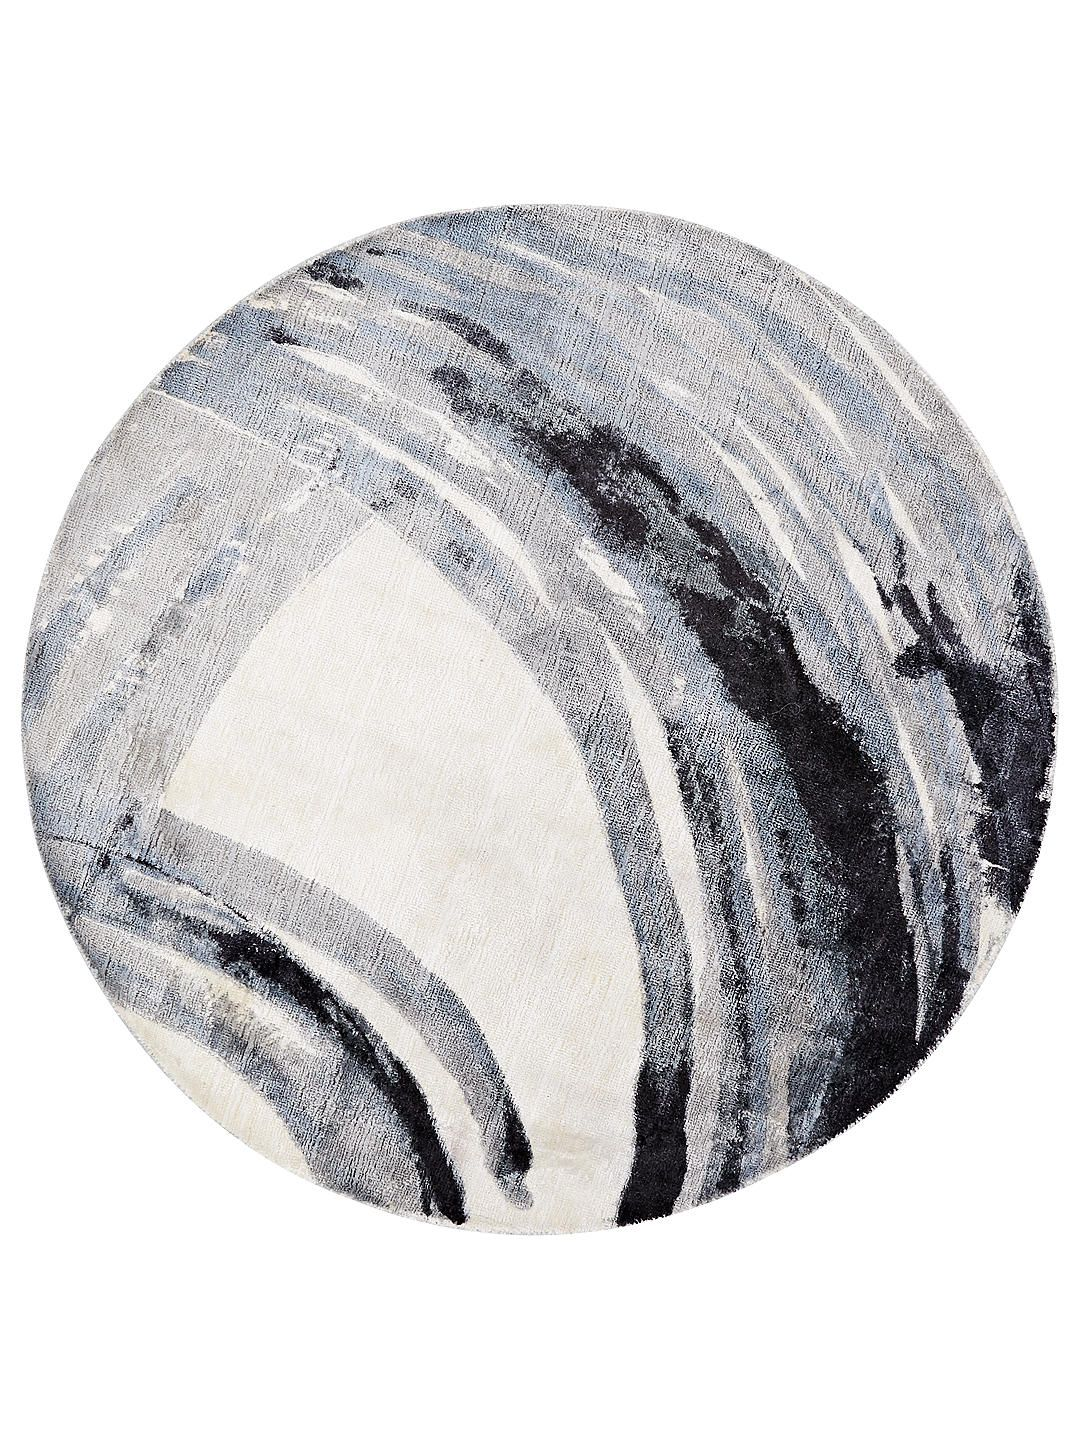 West Elm Ink Round Rug Grey Round Rugs Cheap Carpet Runners